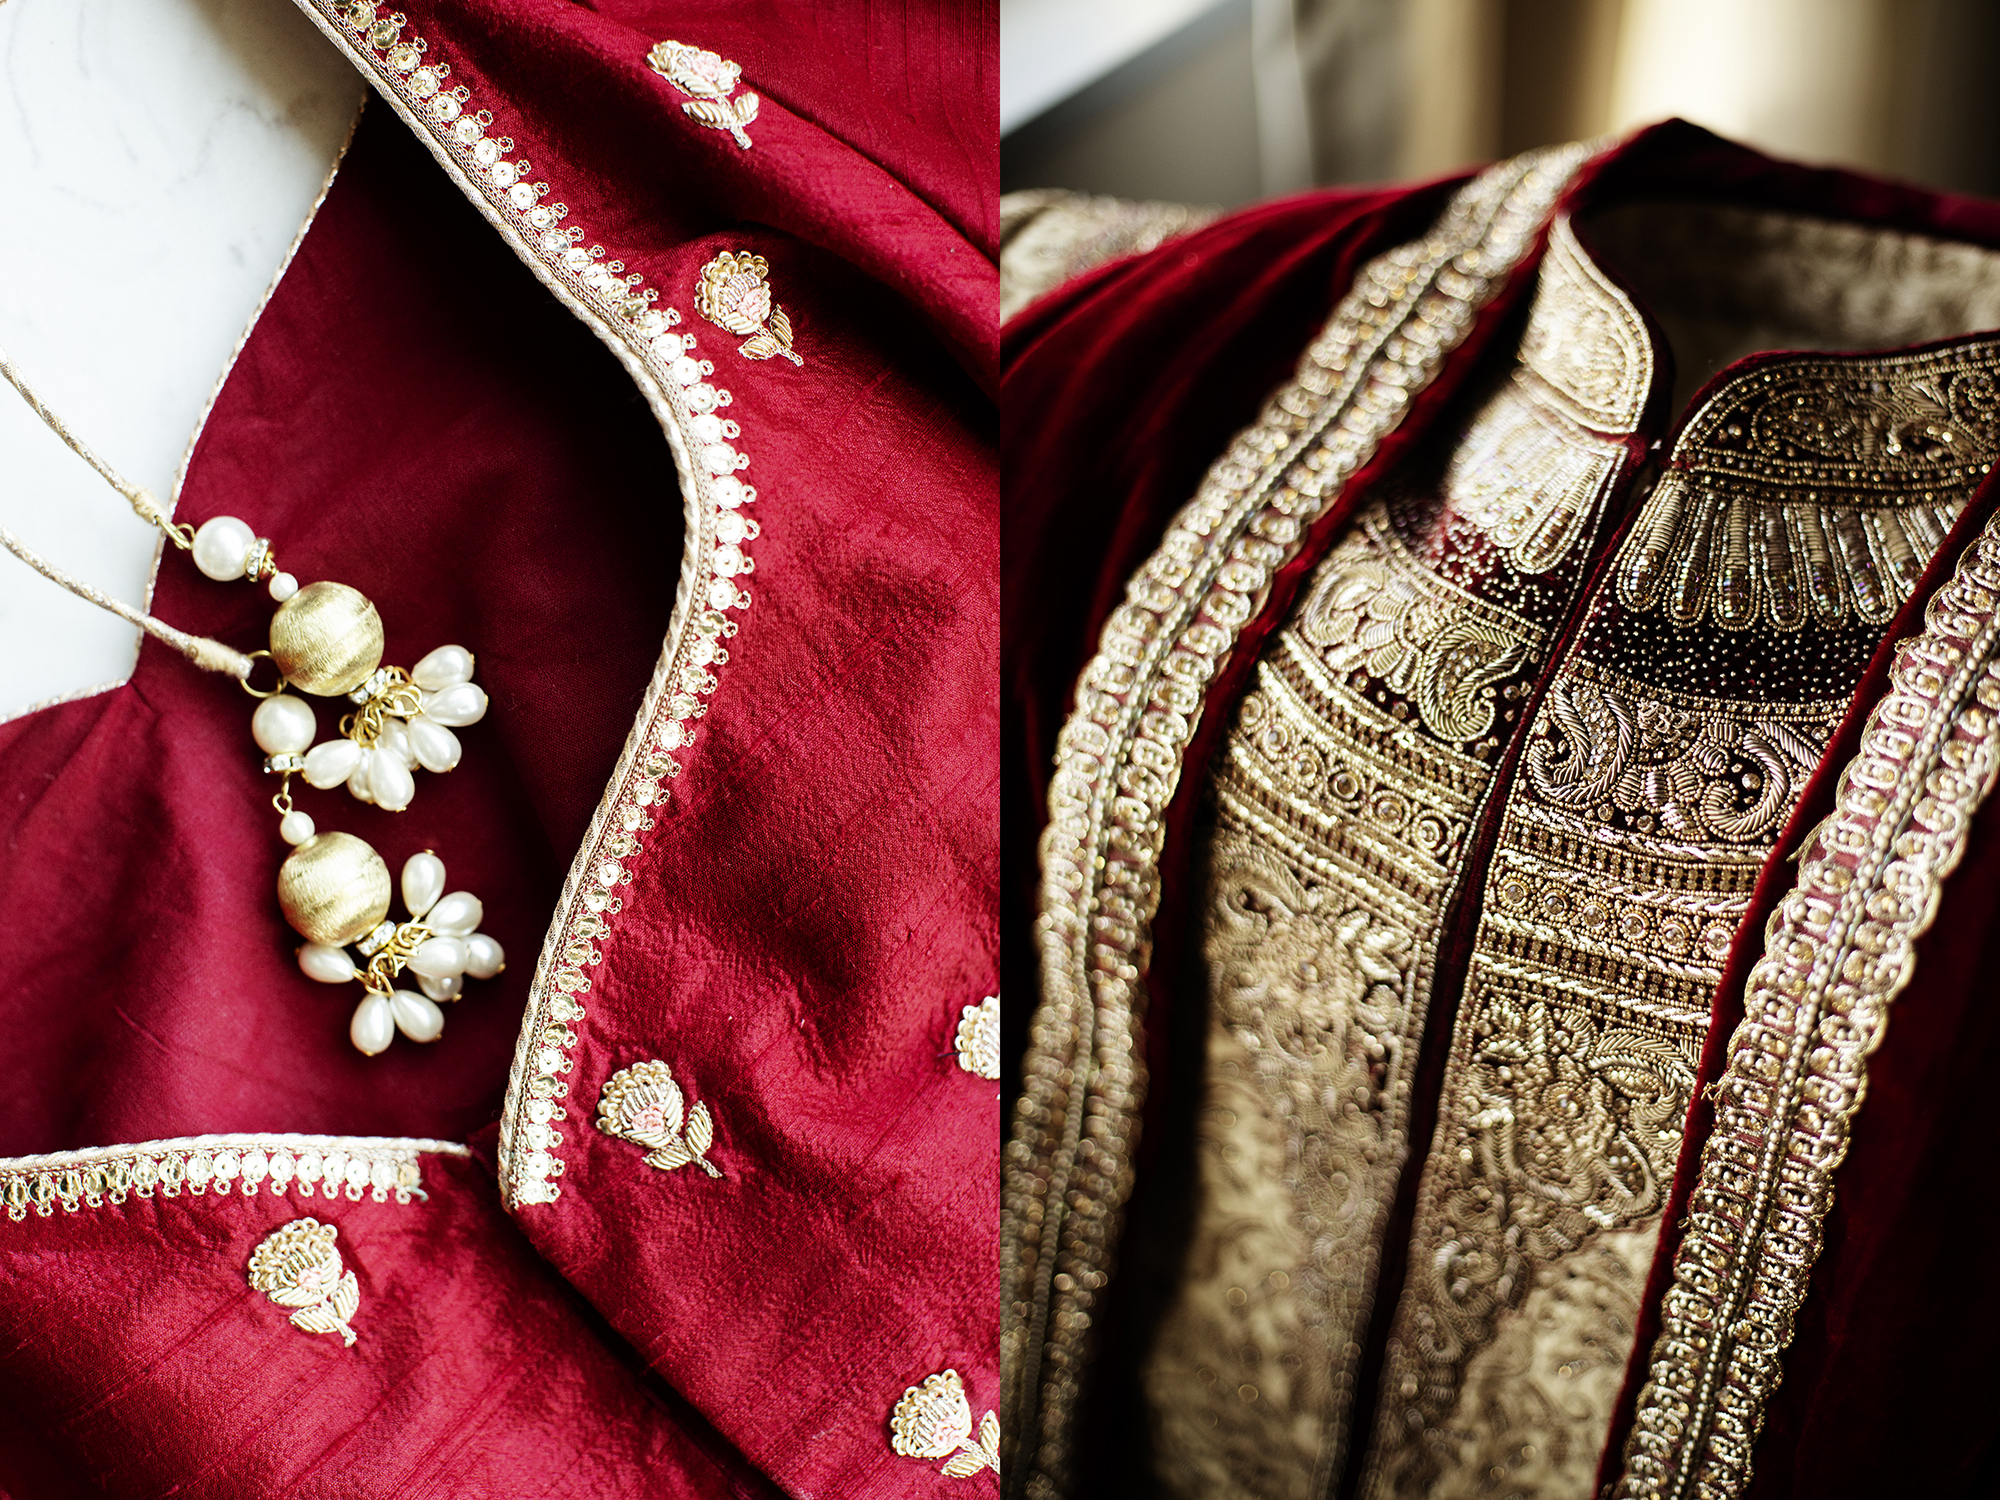 Indian Wedding Attire | Minneapolis Wedding Photos | Photography by Photogen Inc. | Eliesa Johnson | Luxury Wedding Photography Based in Minnesota